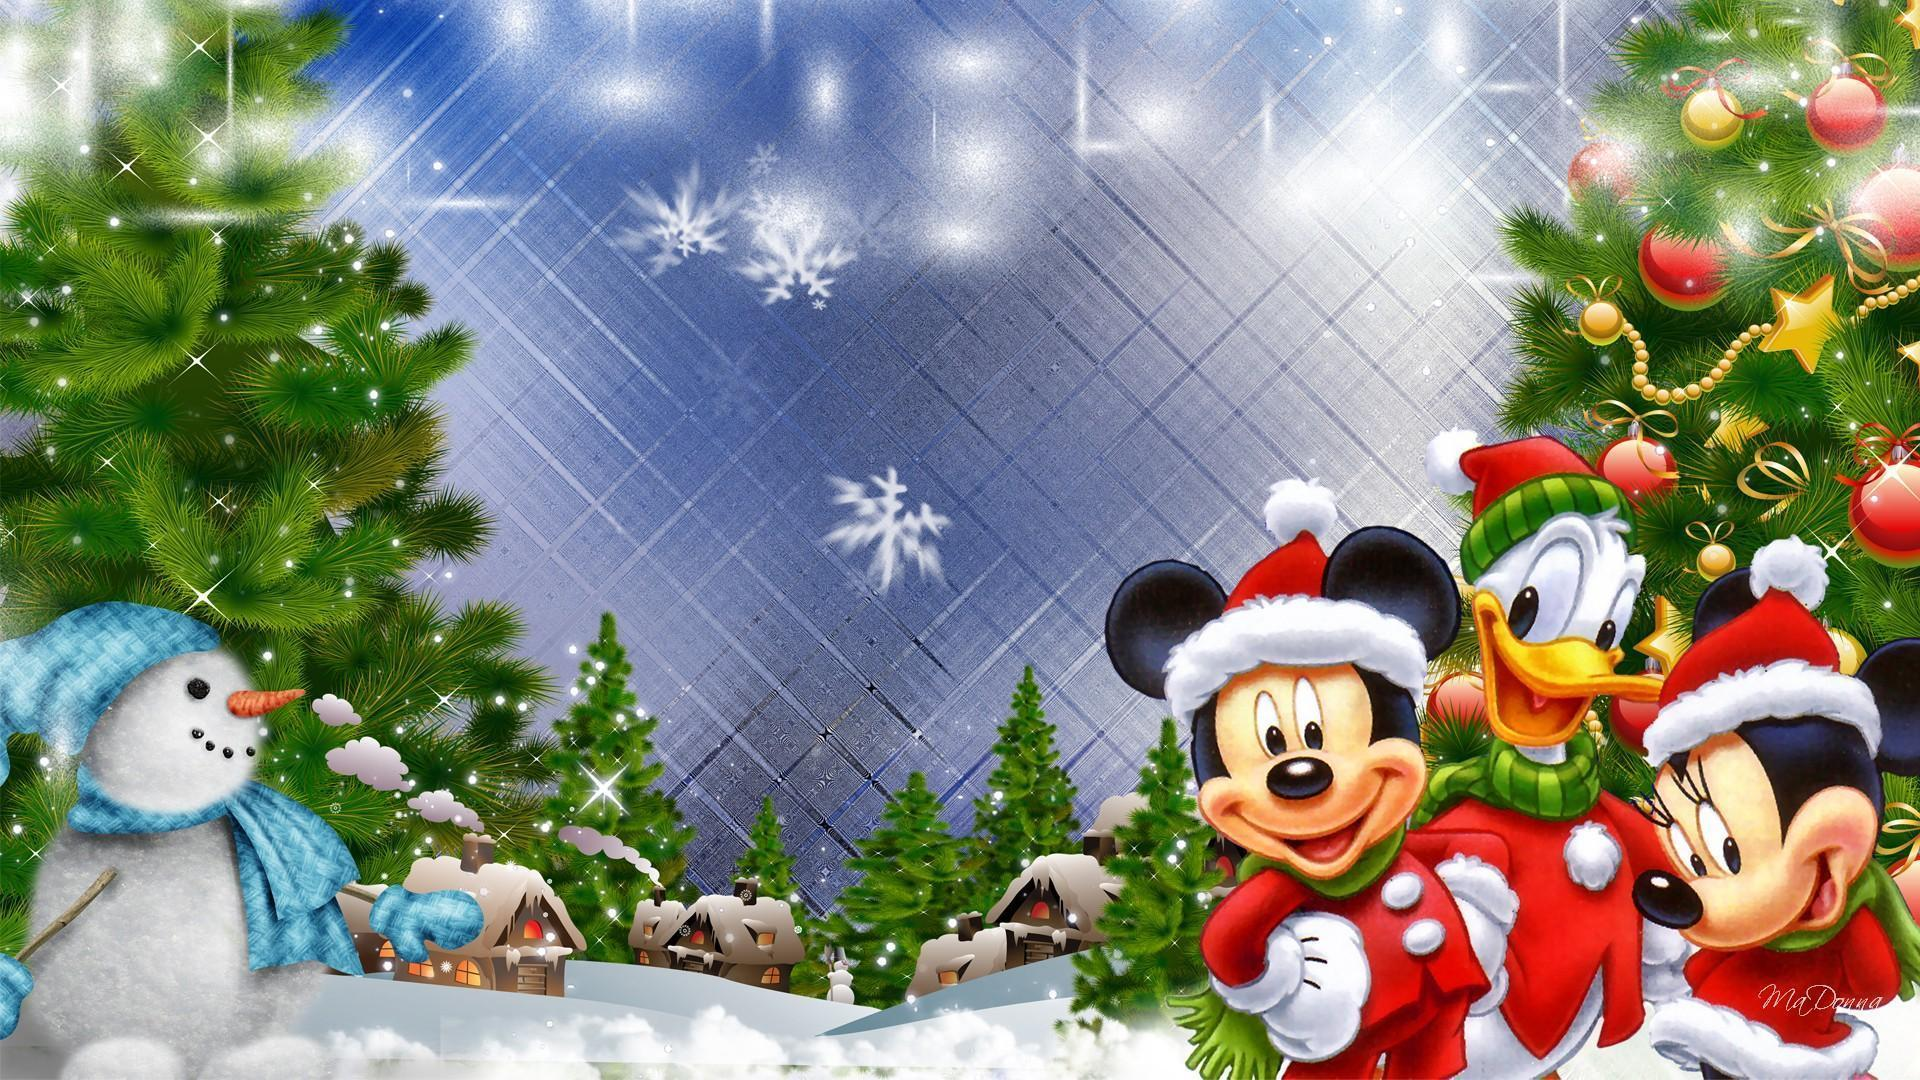 xmas stuff for merry christmas mickey mouse wallpaper - Merry Christmas Mickey Mouse